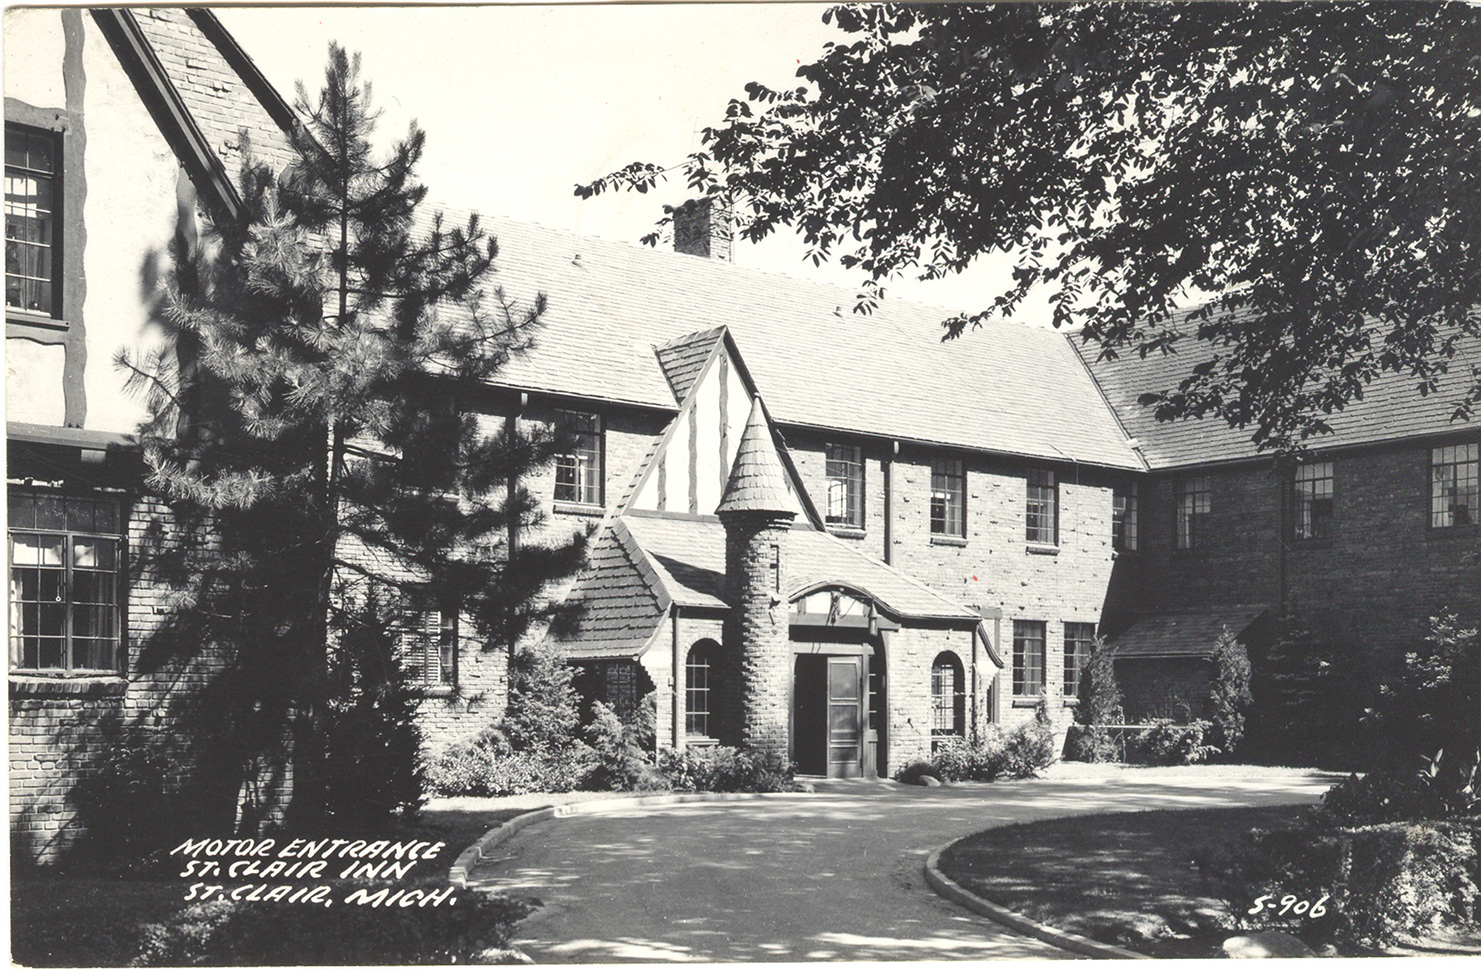 The St Clair Inn decades ago.